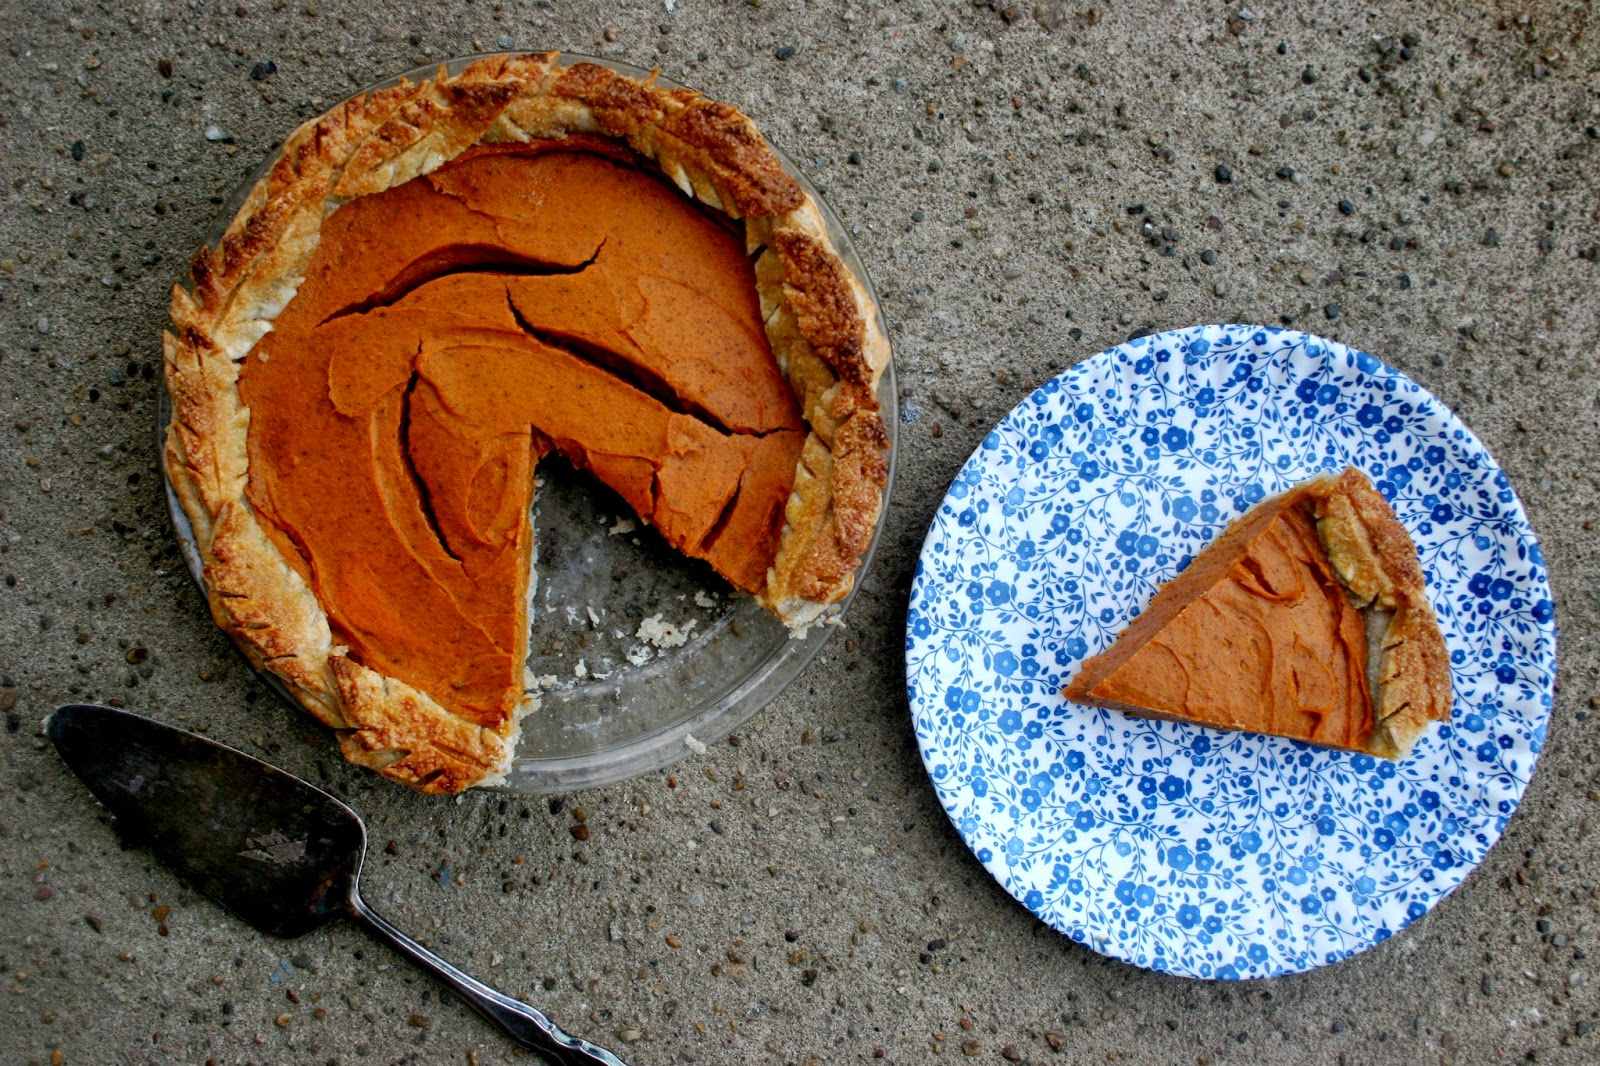 Bakerhand's Sweet Potato Pie with Cornmeal Crust